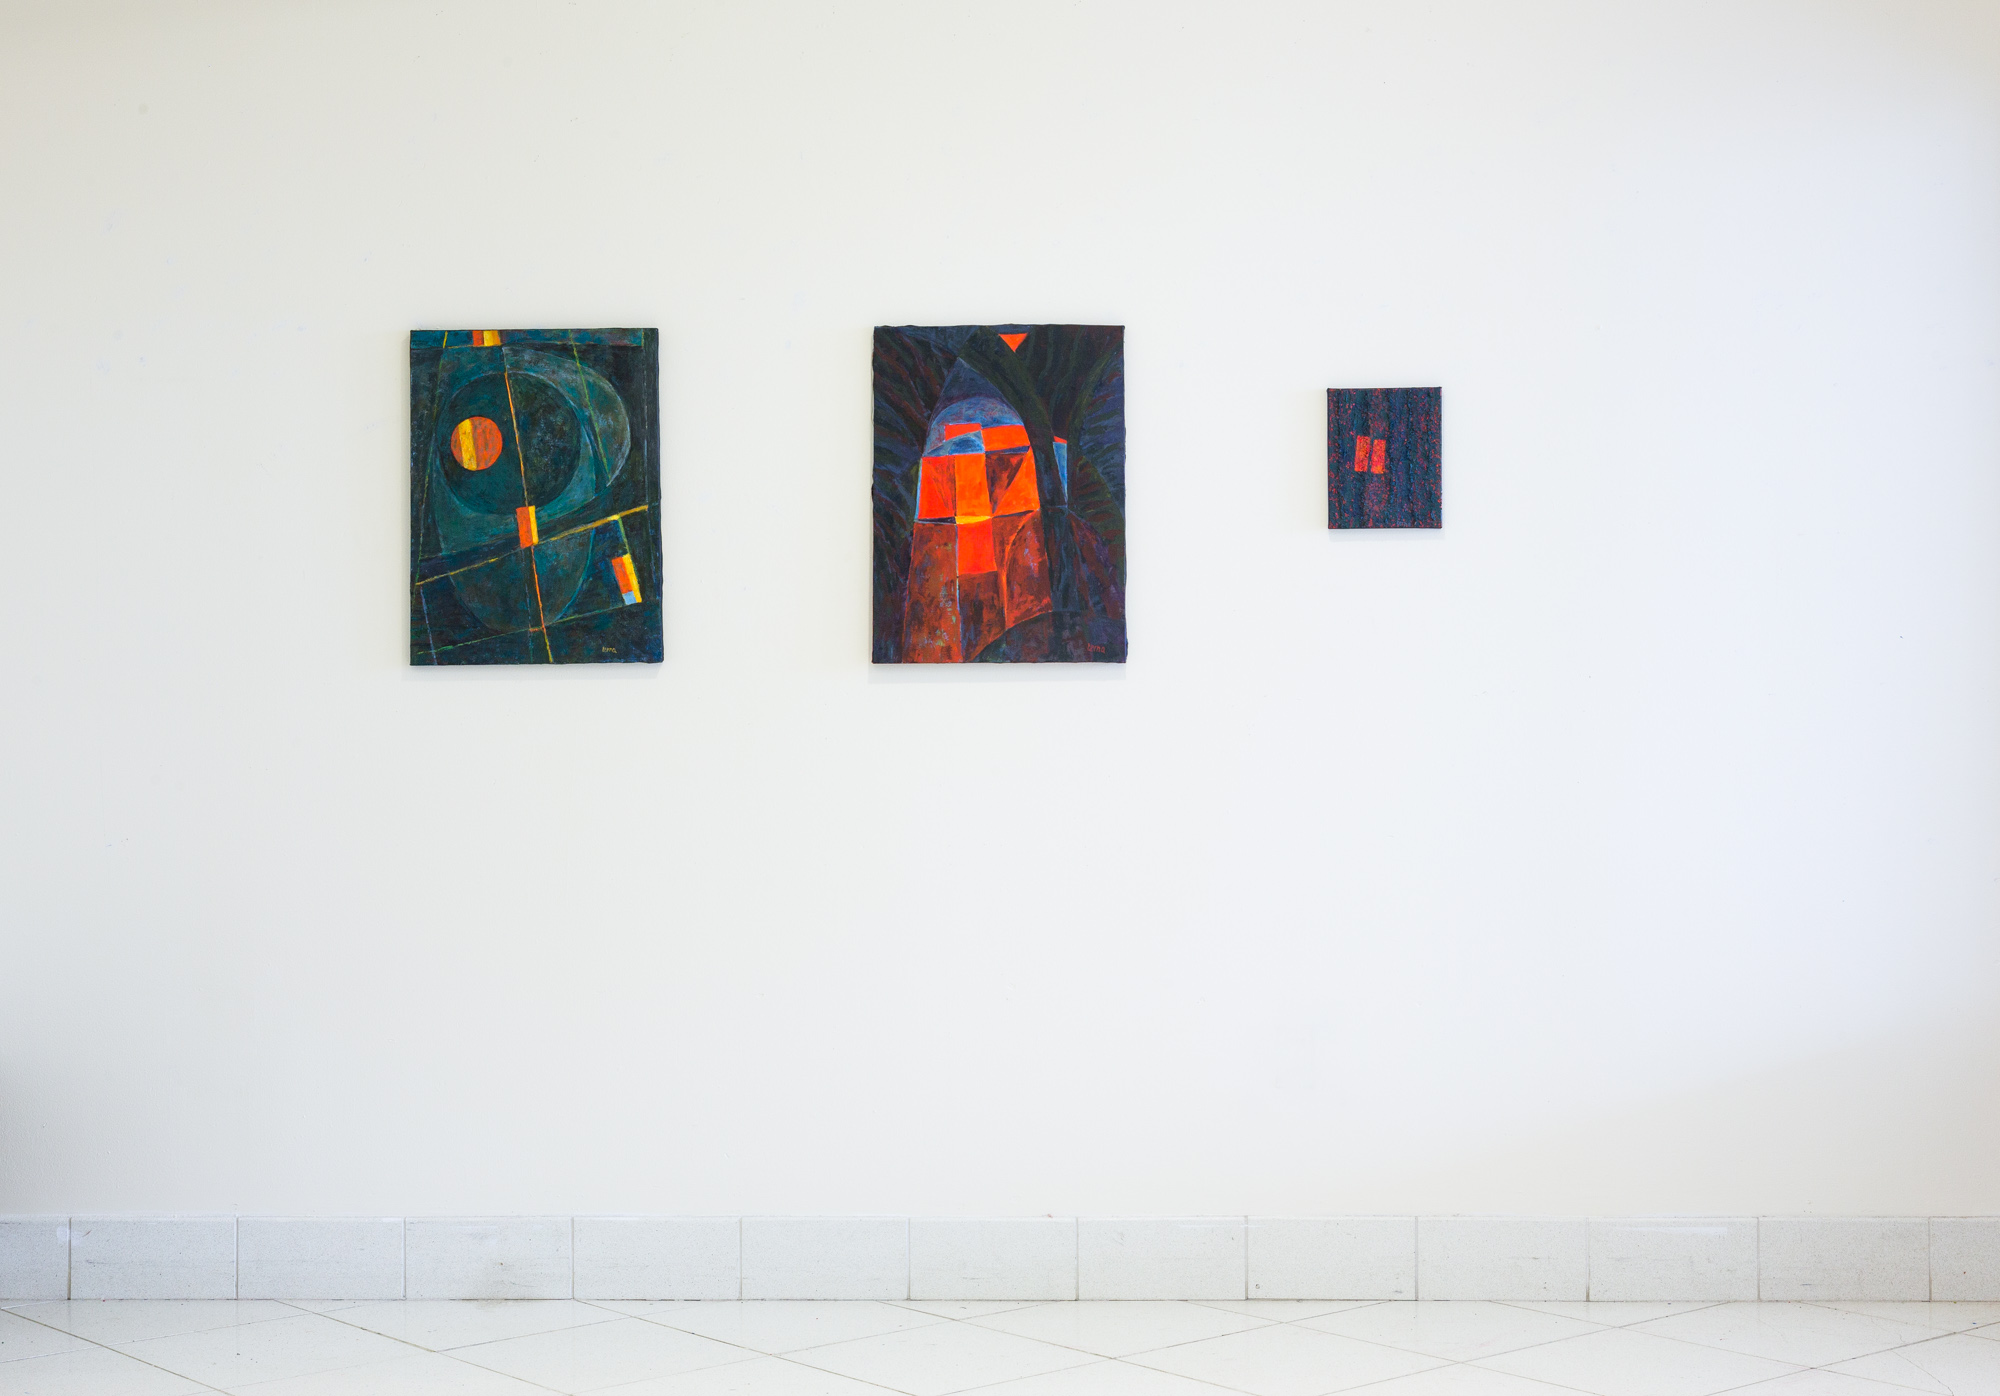 Fred Terna, Tangents to Ovals , 2016, Acrylic on Canvas, 24 x 18 inches (left);  Echo Gate , 2016, Acrylic on Canvas, 24 x 18 inches (center); Passways 5 , 2016, Acrylic on Canvas, 10 x 8 inches (right)